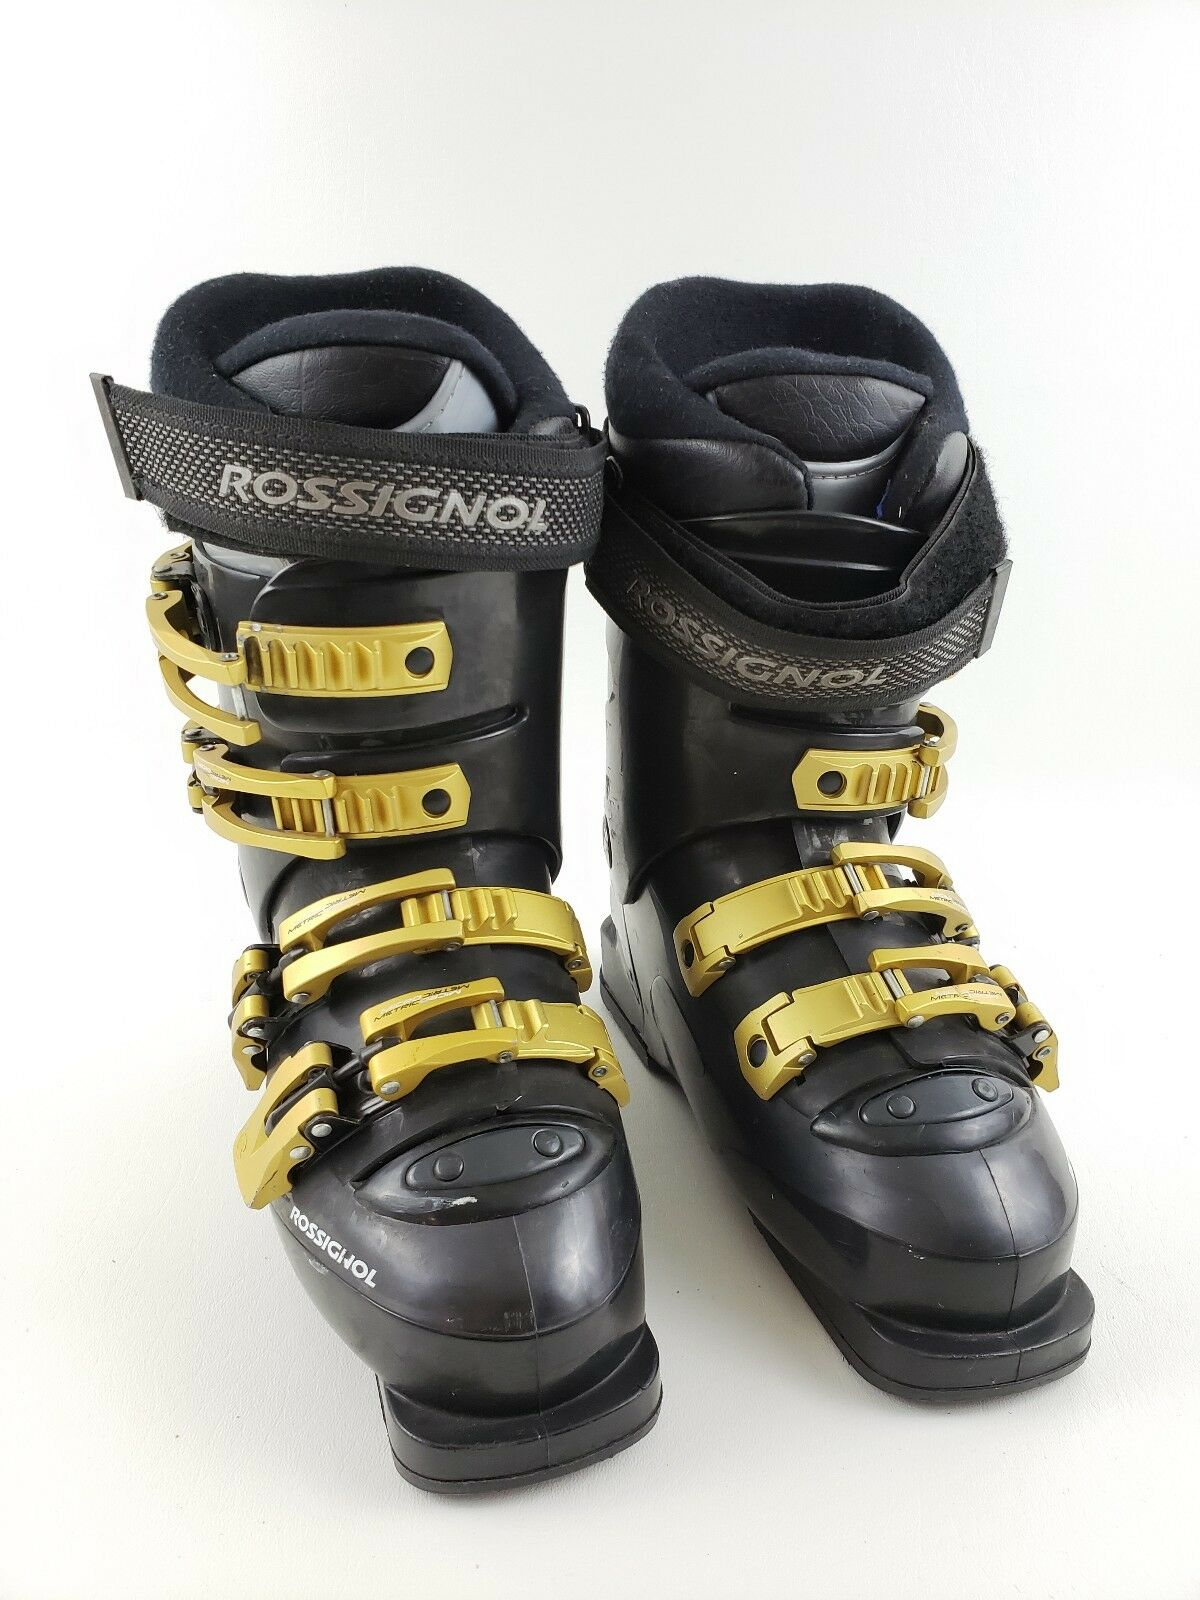 Rossignol Comp Pro  Downhill Ski Boots Womens 23.5   US 7  lowest prices